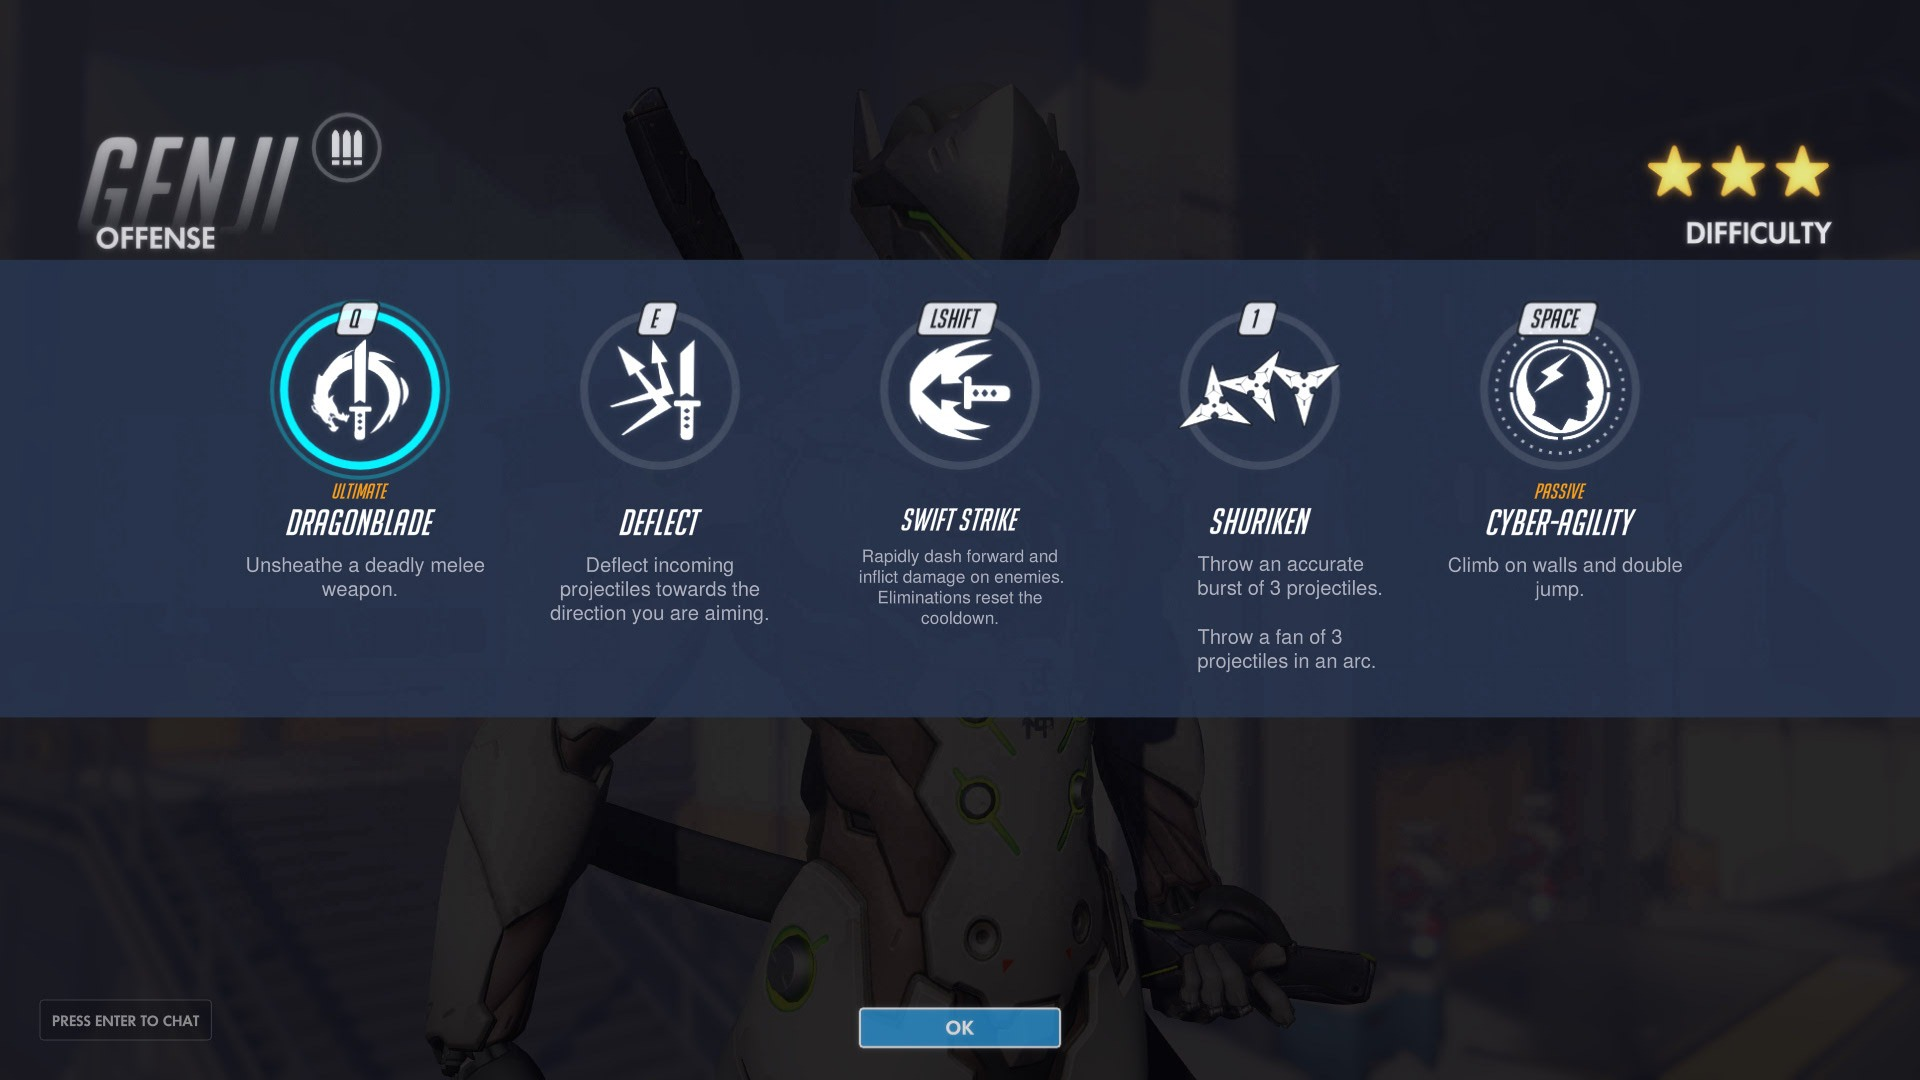 GENJI Offense Abilities Overwatch